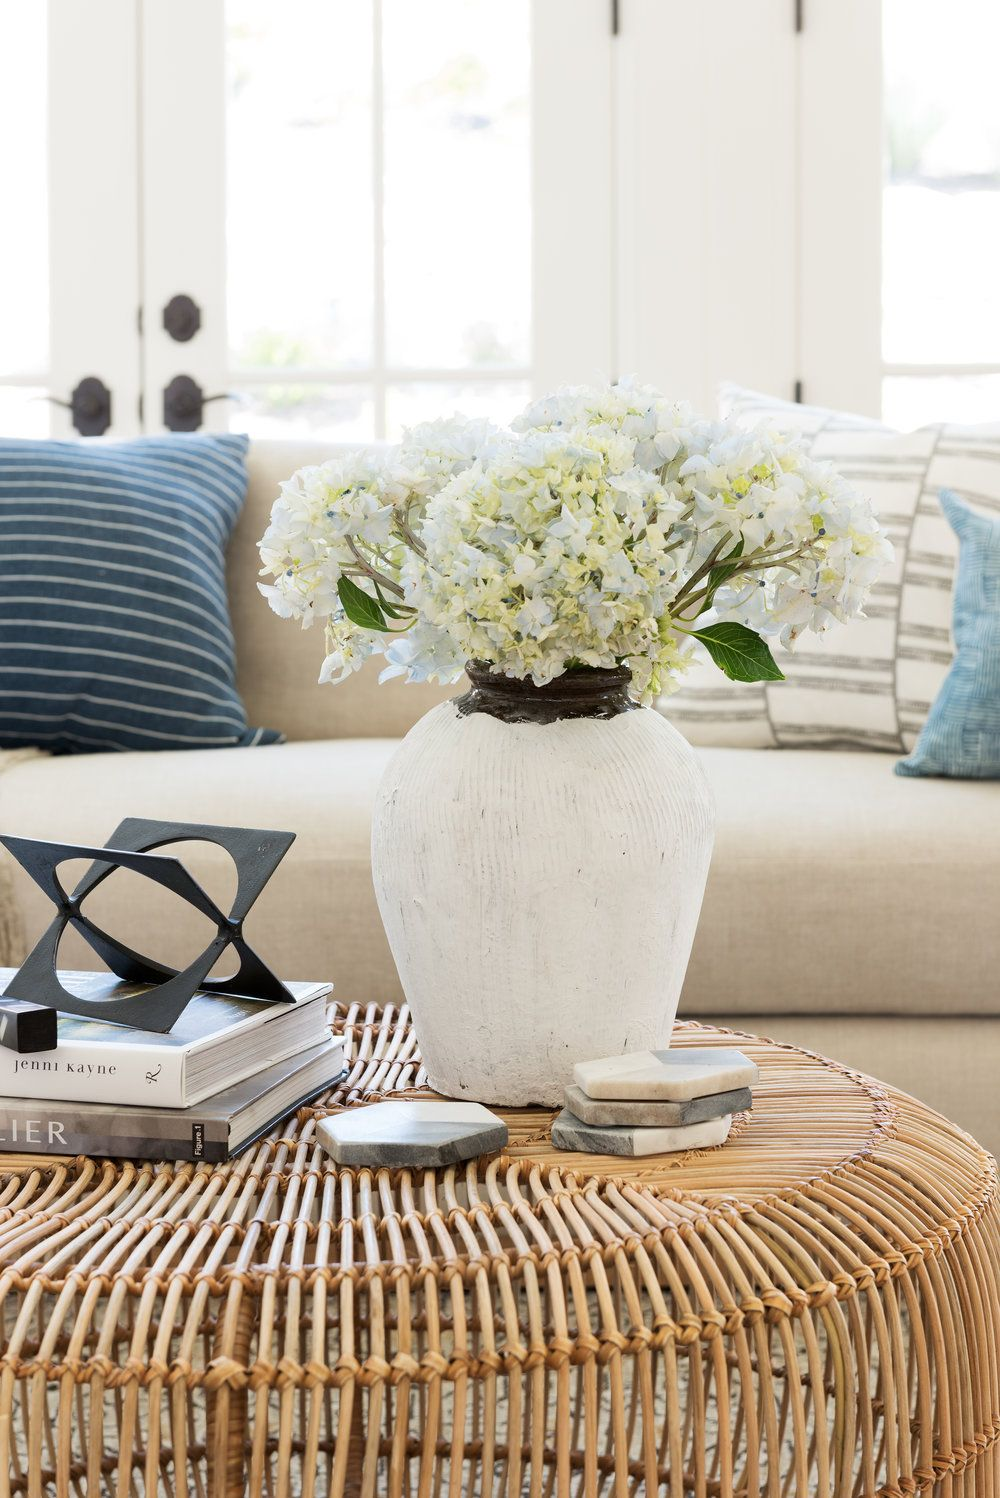 Hacks For Round Coffee Table Styling Studio Mcgee Round Coffee Table Styling Coffee Table Styling Round Coffee Table [ jpg ]